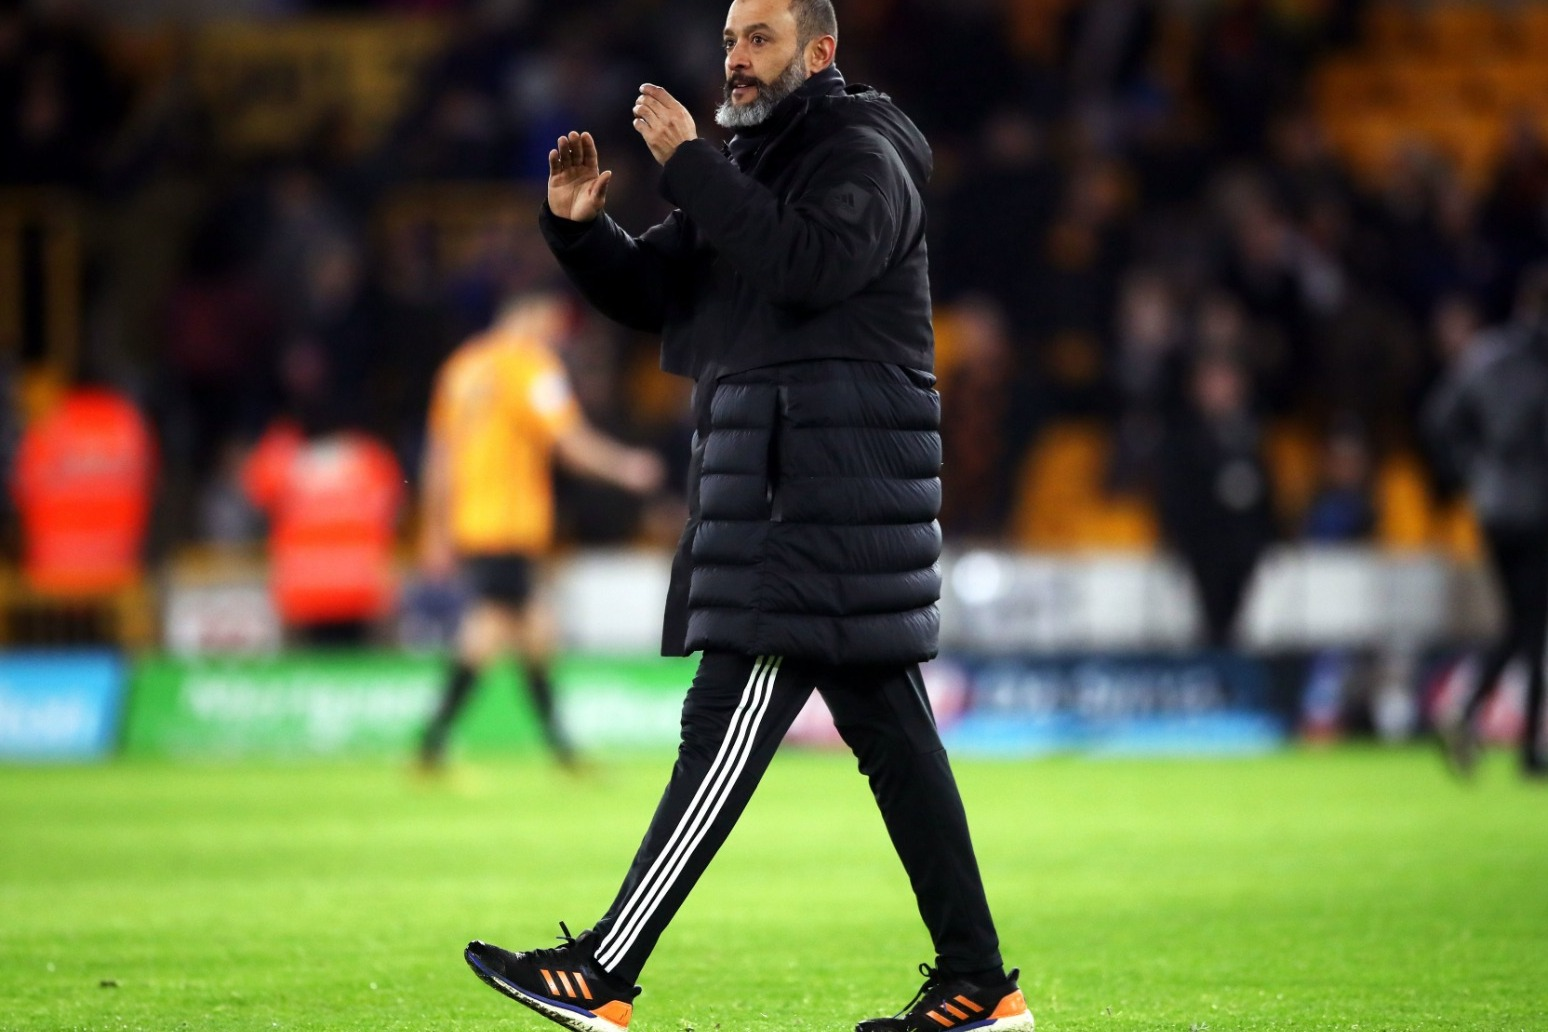 VAR controversy as Wolves and Leicester ends in stalemate